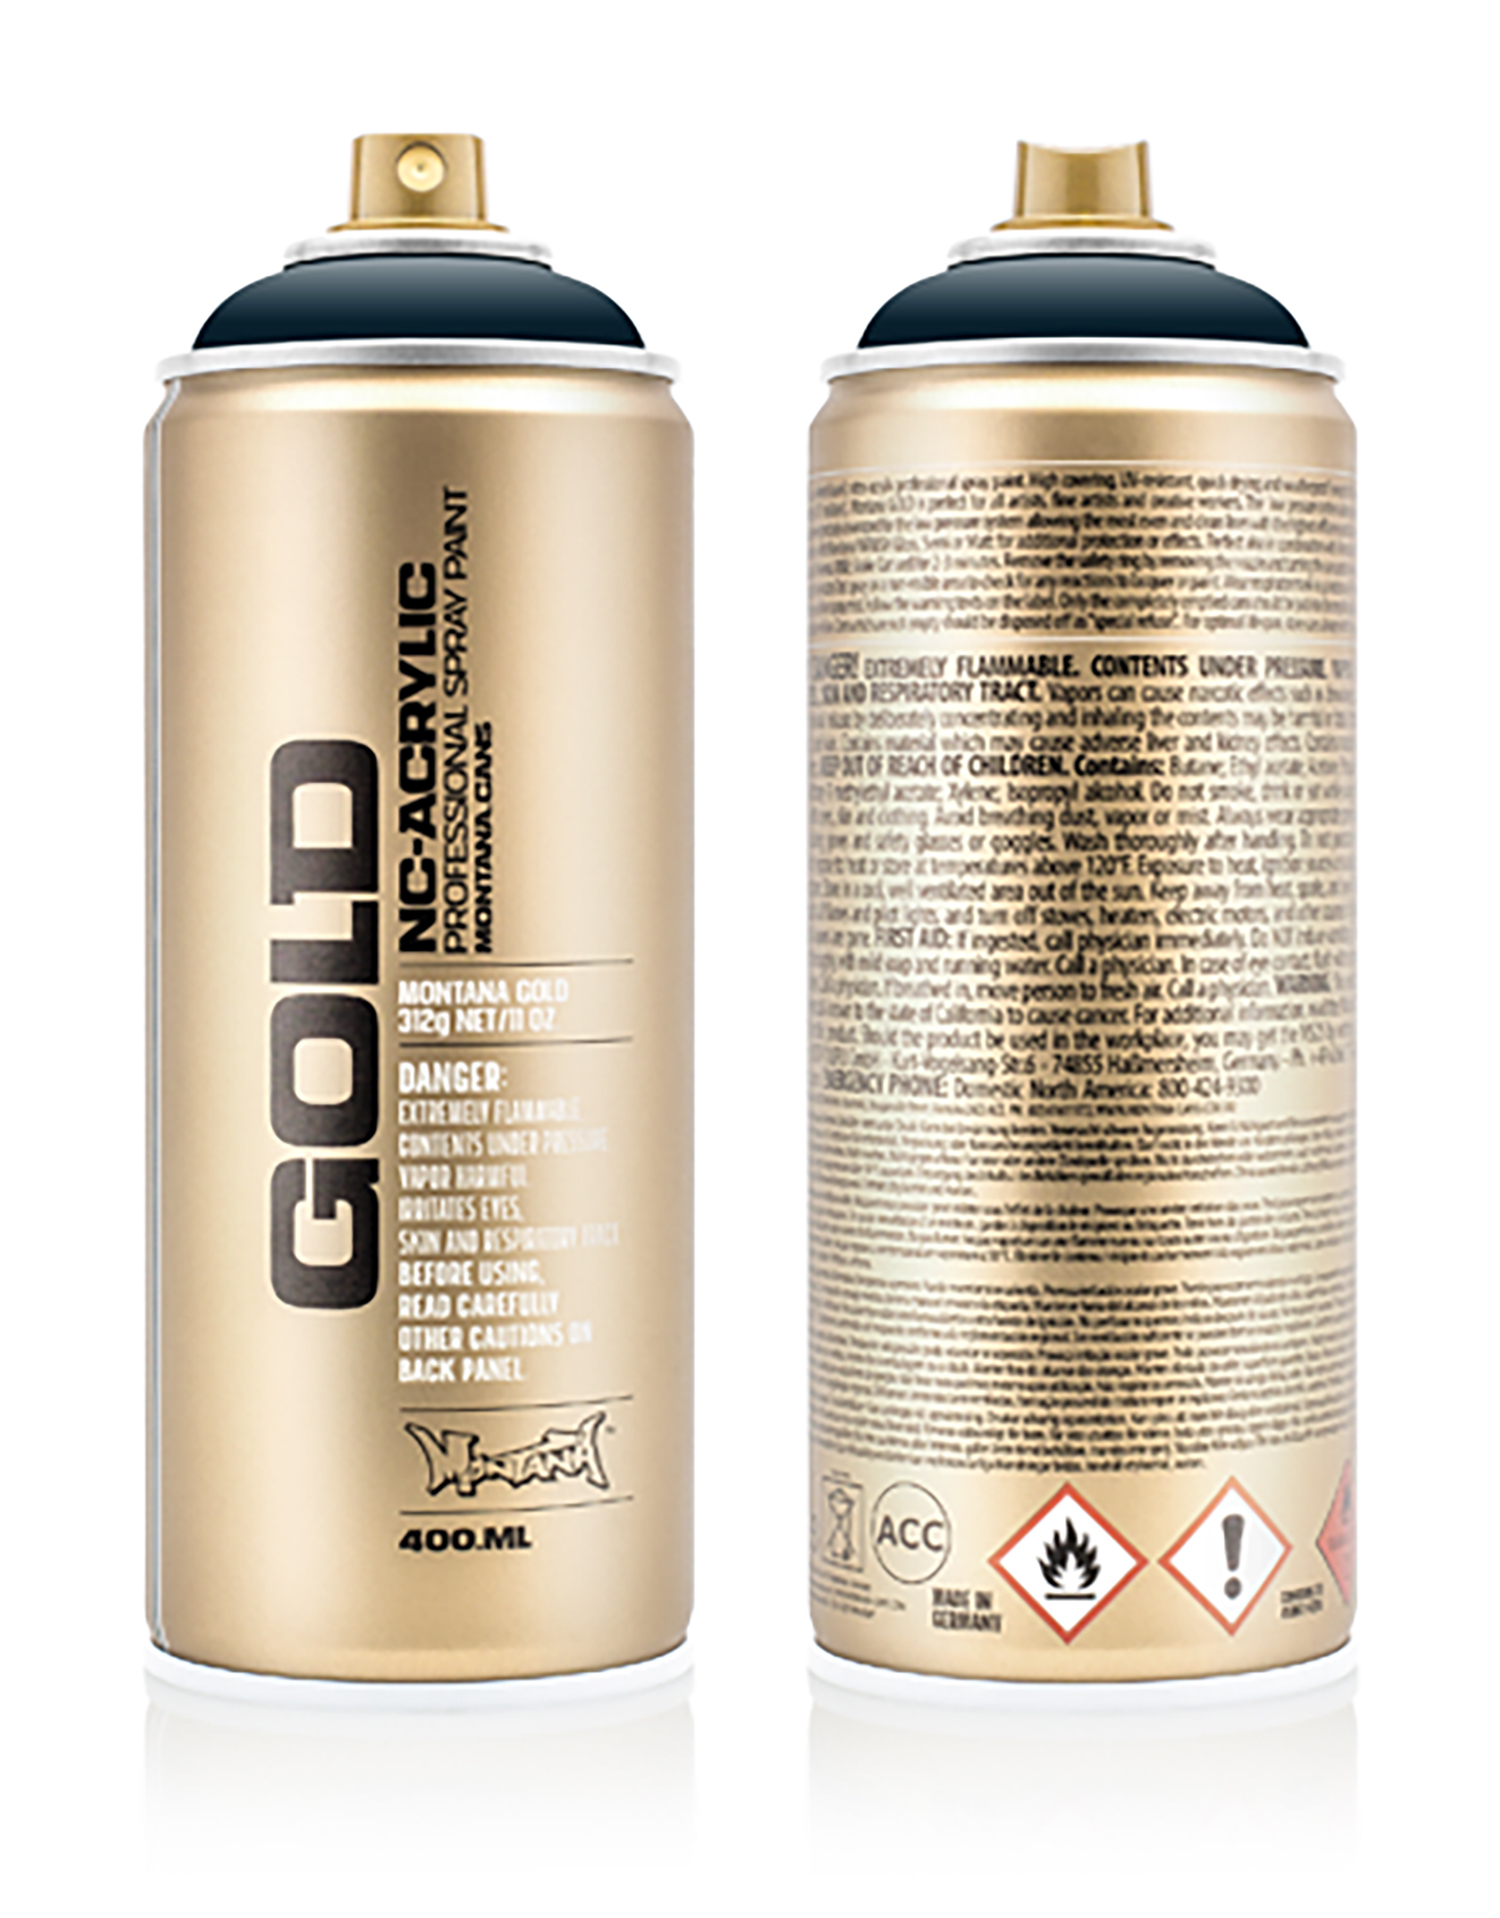 MONTANA-GOLD-SPRAY-400ML-G-5170